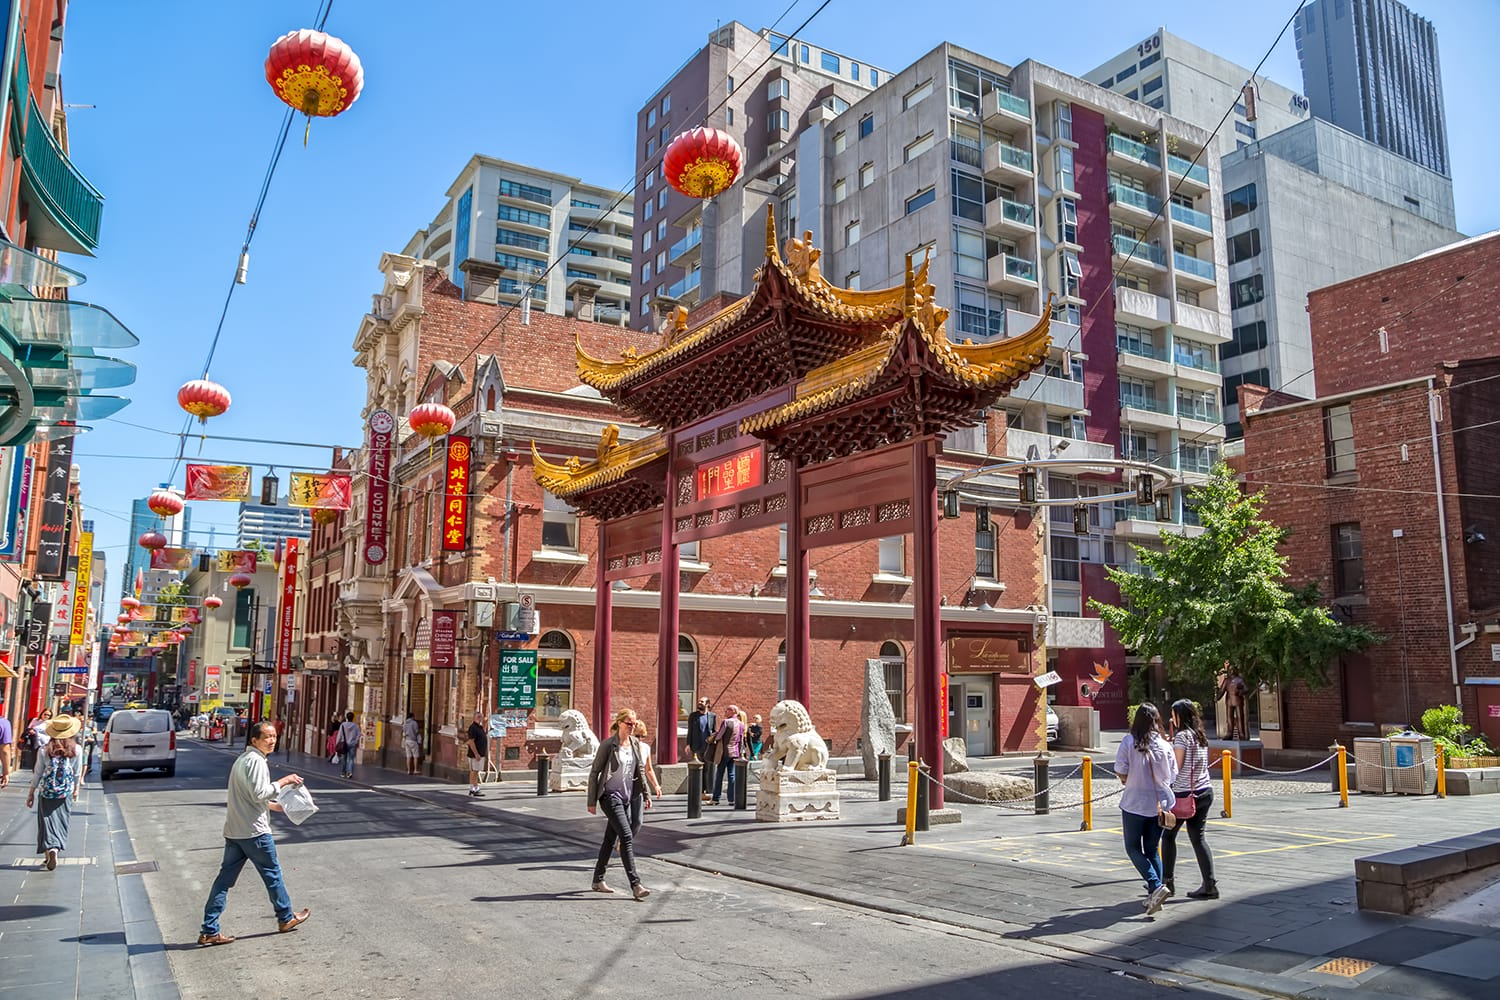 People walk down the Chinatown main street by the Heaven archway, gift from Jiangsu province. Melbourne, Australia